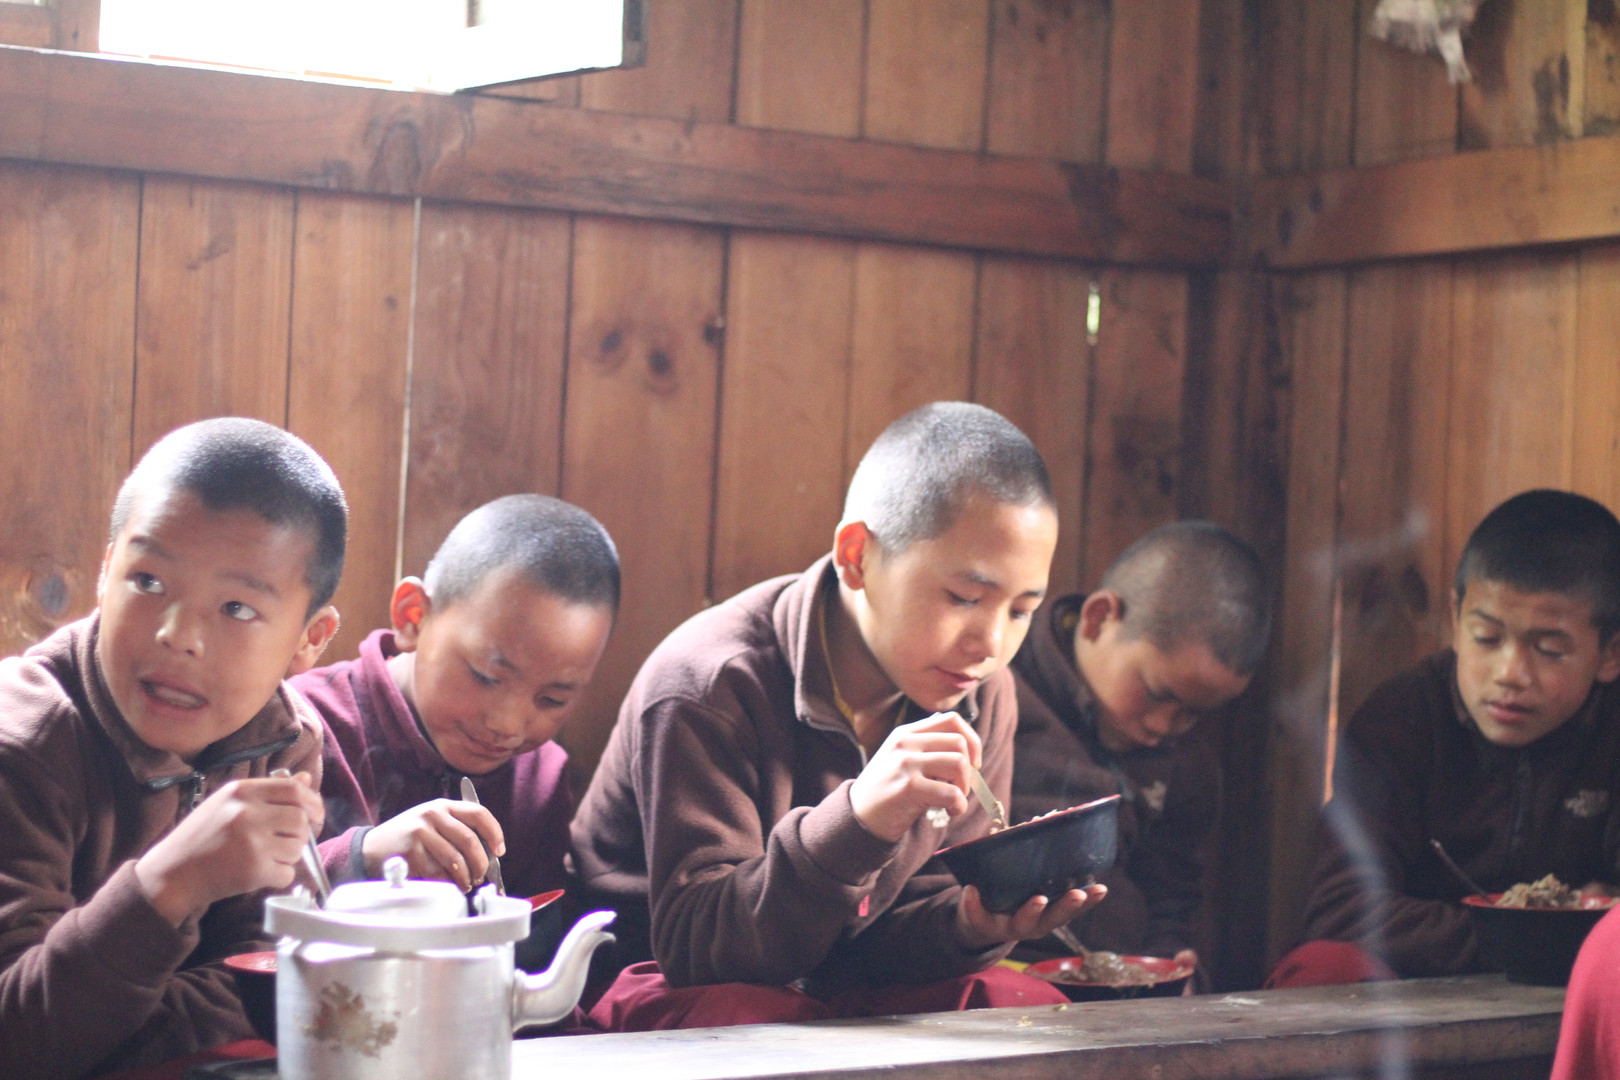 Meal time for little monks